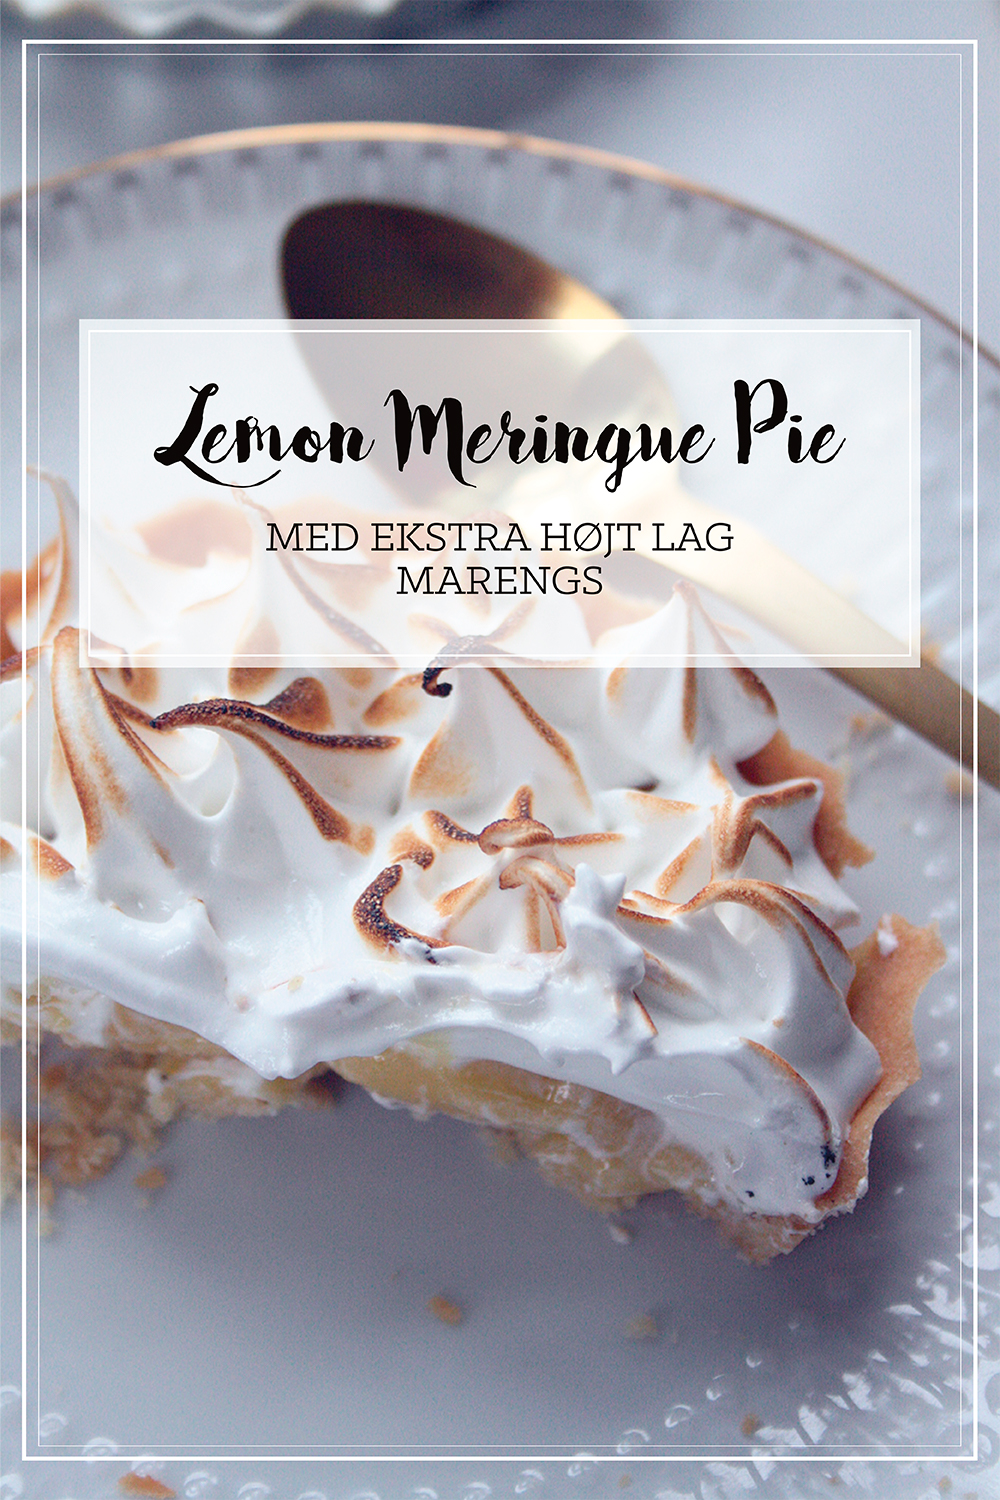 Opskrift lemon meringue pie citrontærte